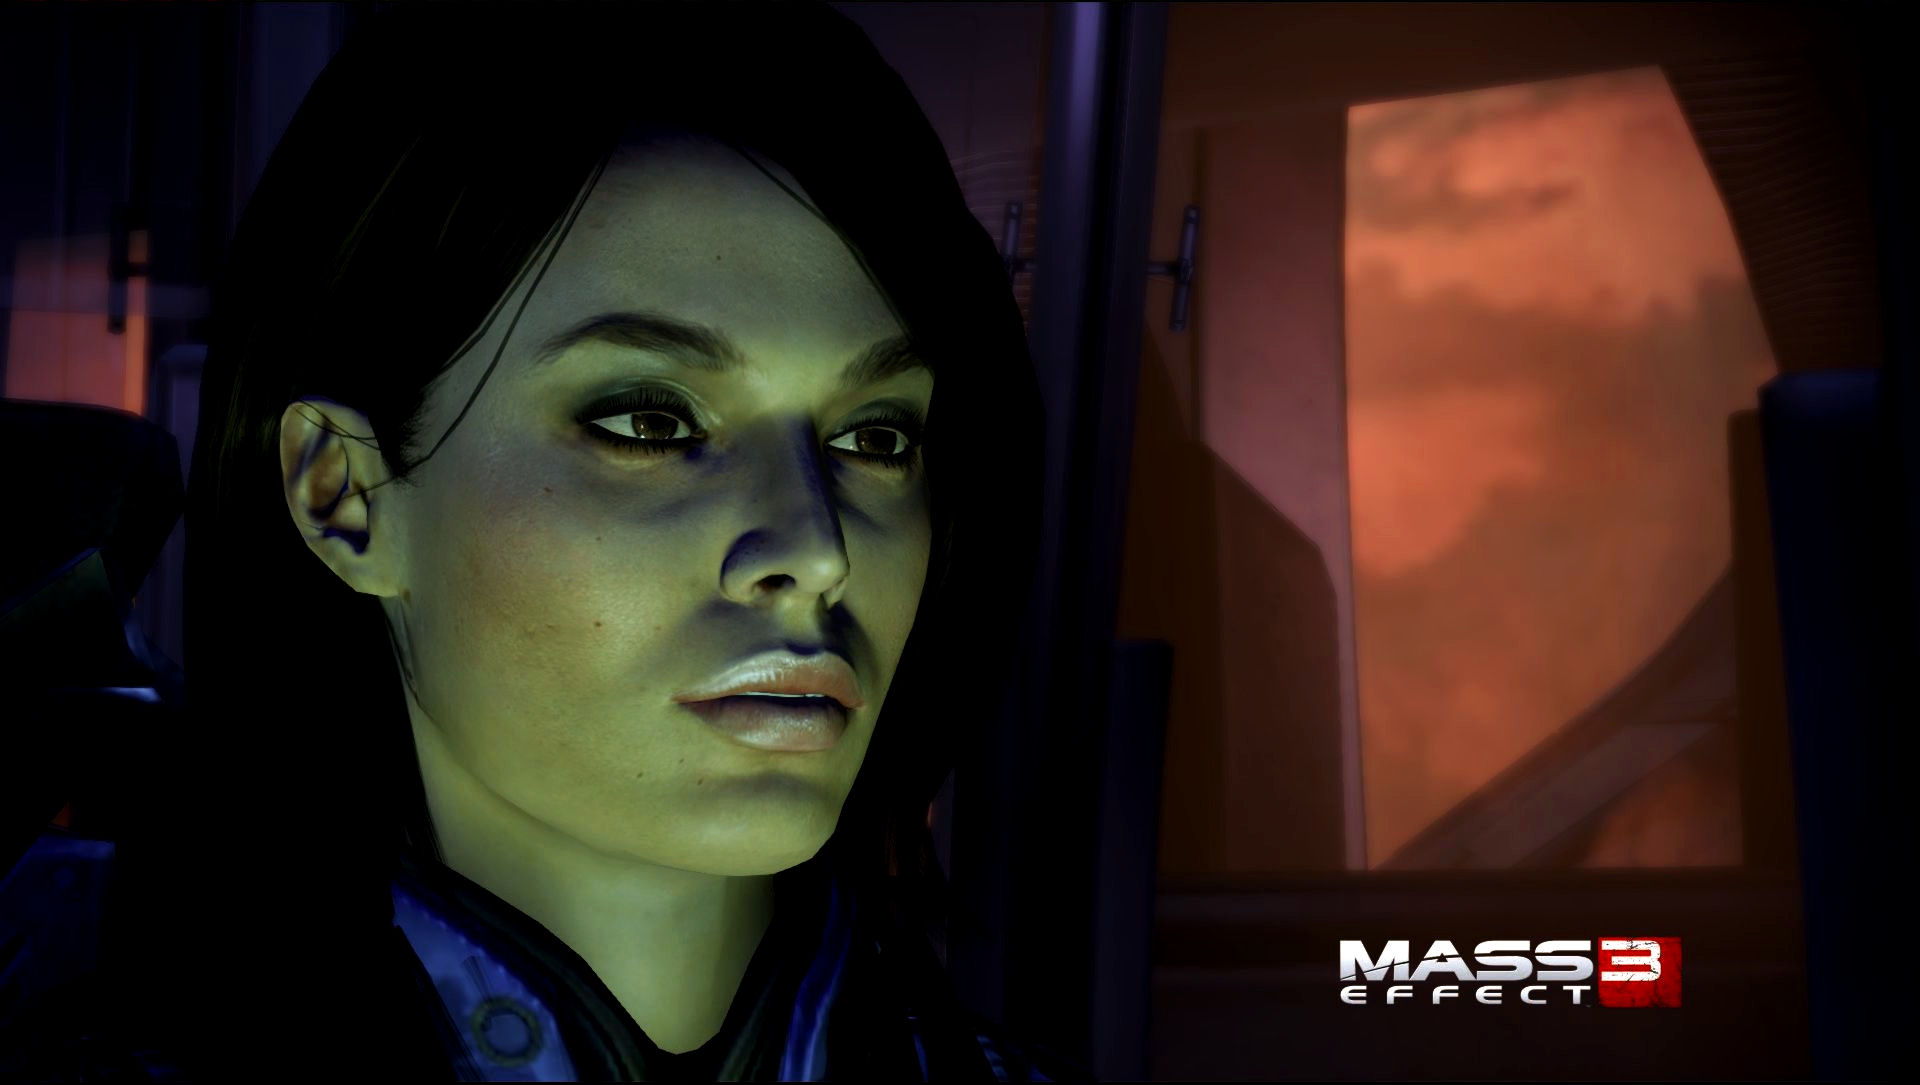 Three Sexy Ashley Williams Screenshot Wallpapers From Me3